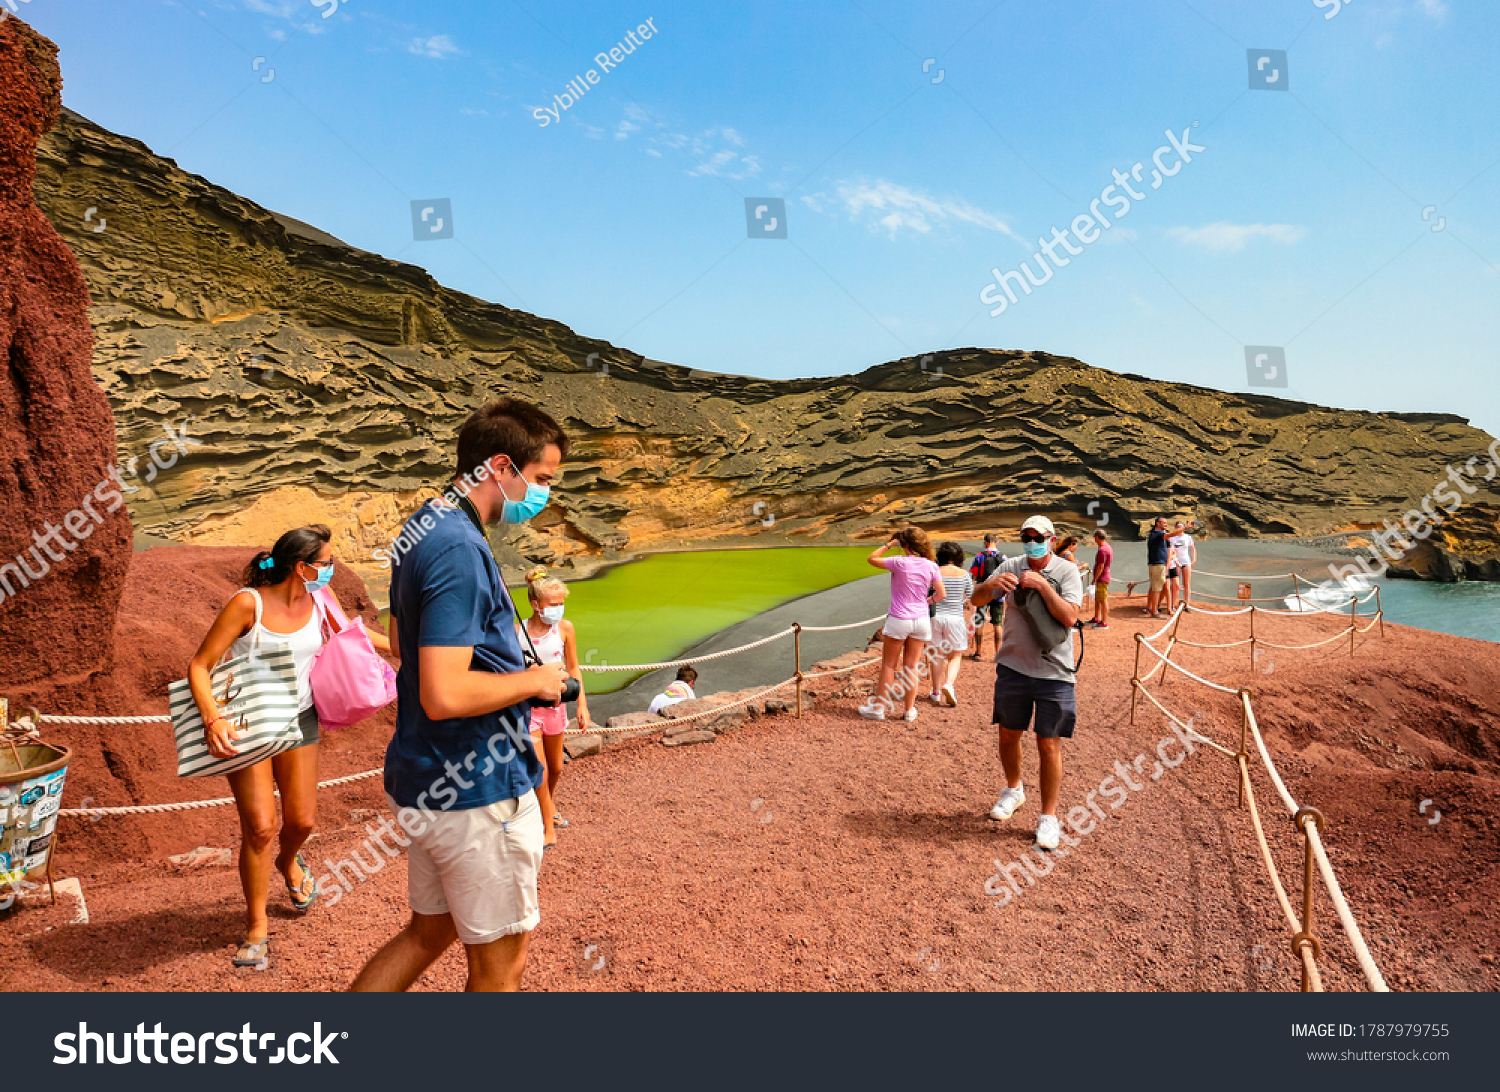 stock-photo-el-golfo-lanzarote-spain-jul